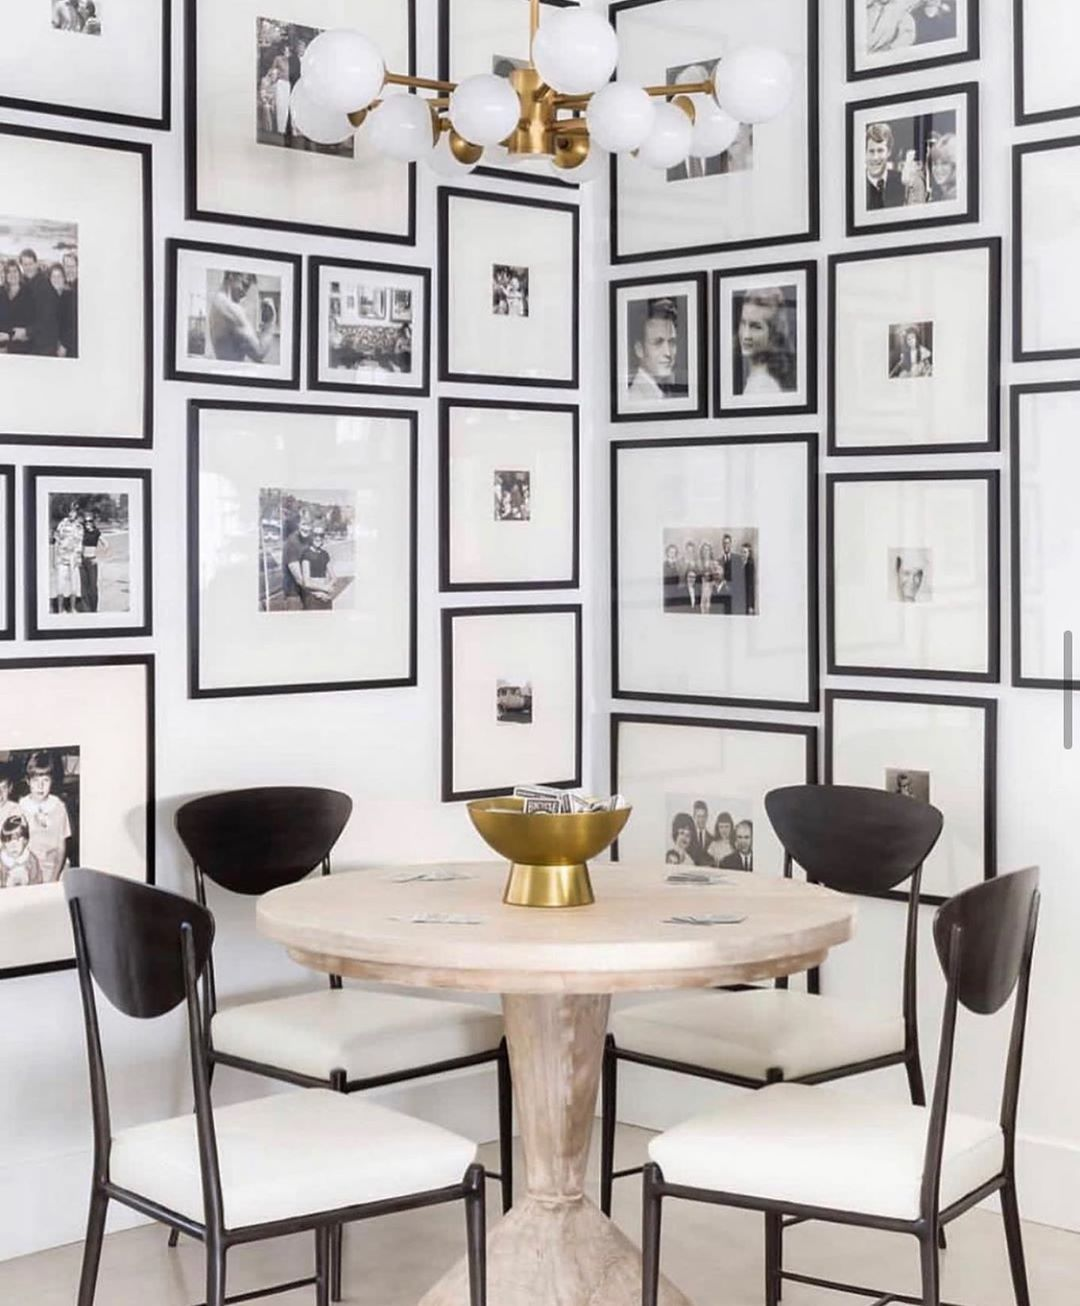 "Atiyeh Adeli on Instagram: ""Black and White Obsession!▪️◽️◼️▫️▪️ . . . . . #art #interior #interiordesign #diningtable #architecture #instadecor #diningroomdecor…"""